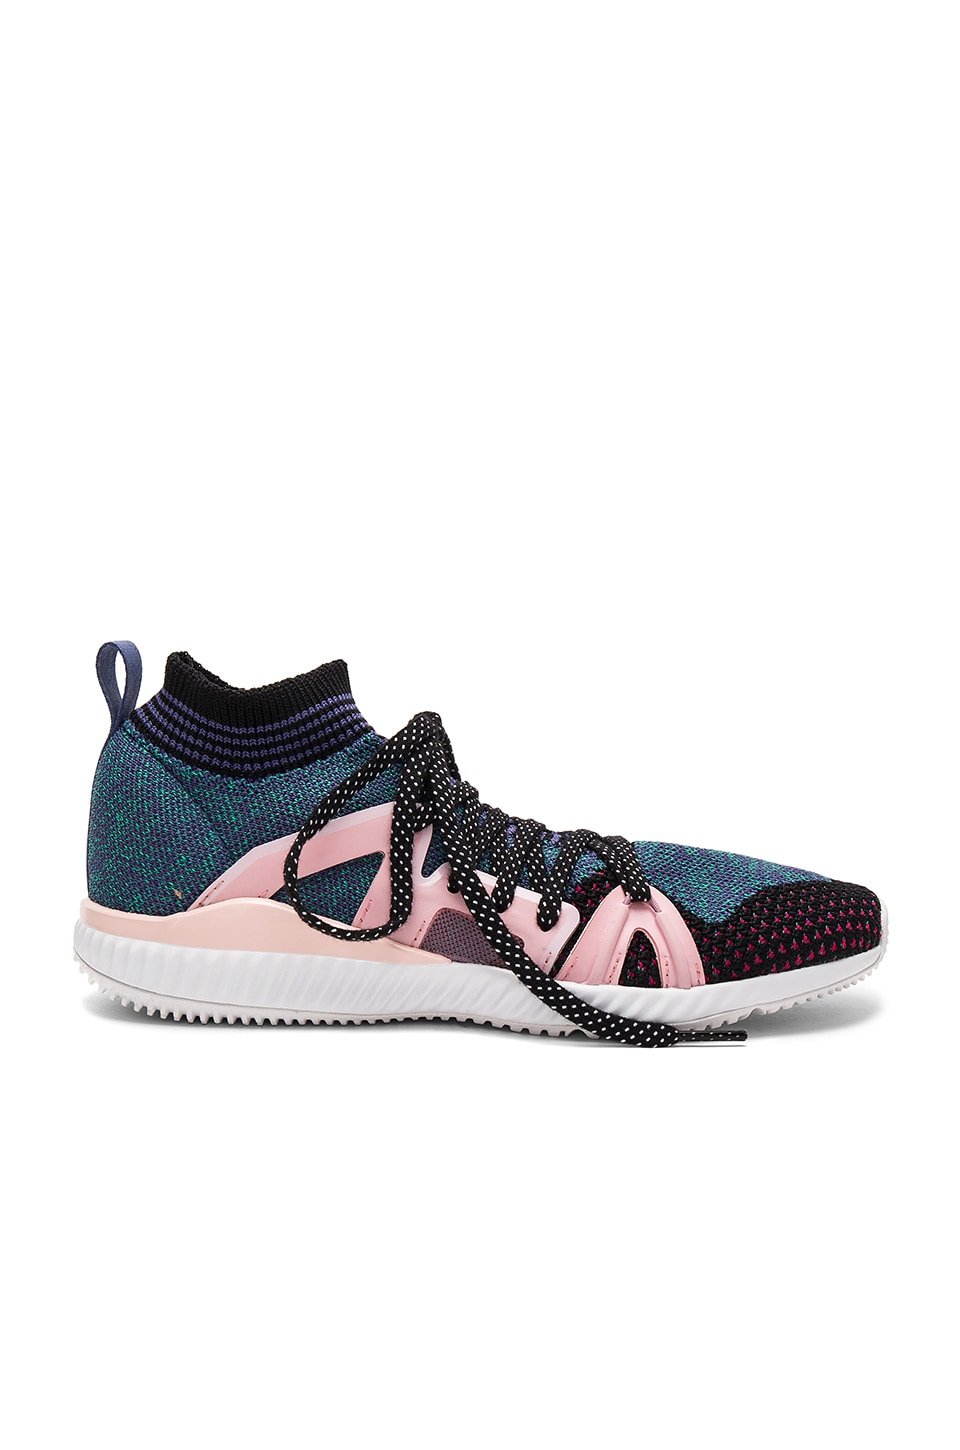 adidas by Stella McCartney Crazymove Bounce Sneaker in Black White & Ballet